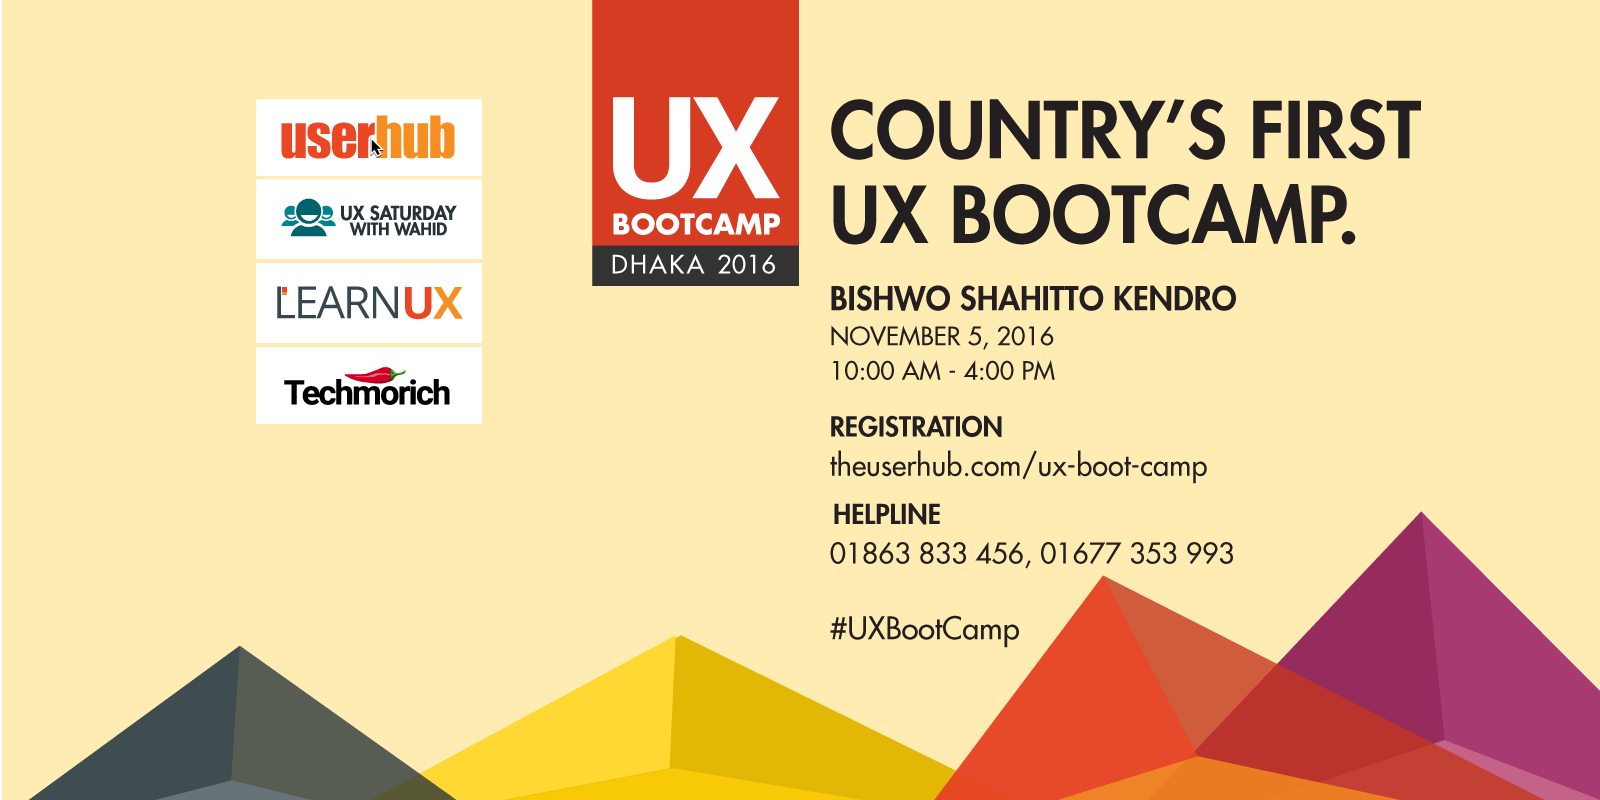 Country's first #UXBootCamp on November 5 at Bishwo Shahitto Kendro [বিশ্বসাহিত্য কেন্দ্র]. DETAIL & REGISTRATION https://www.theuserhub.com/ux-boot-camp/ HELPLINE: 01863 833 456, 01677 353 993